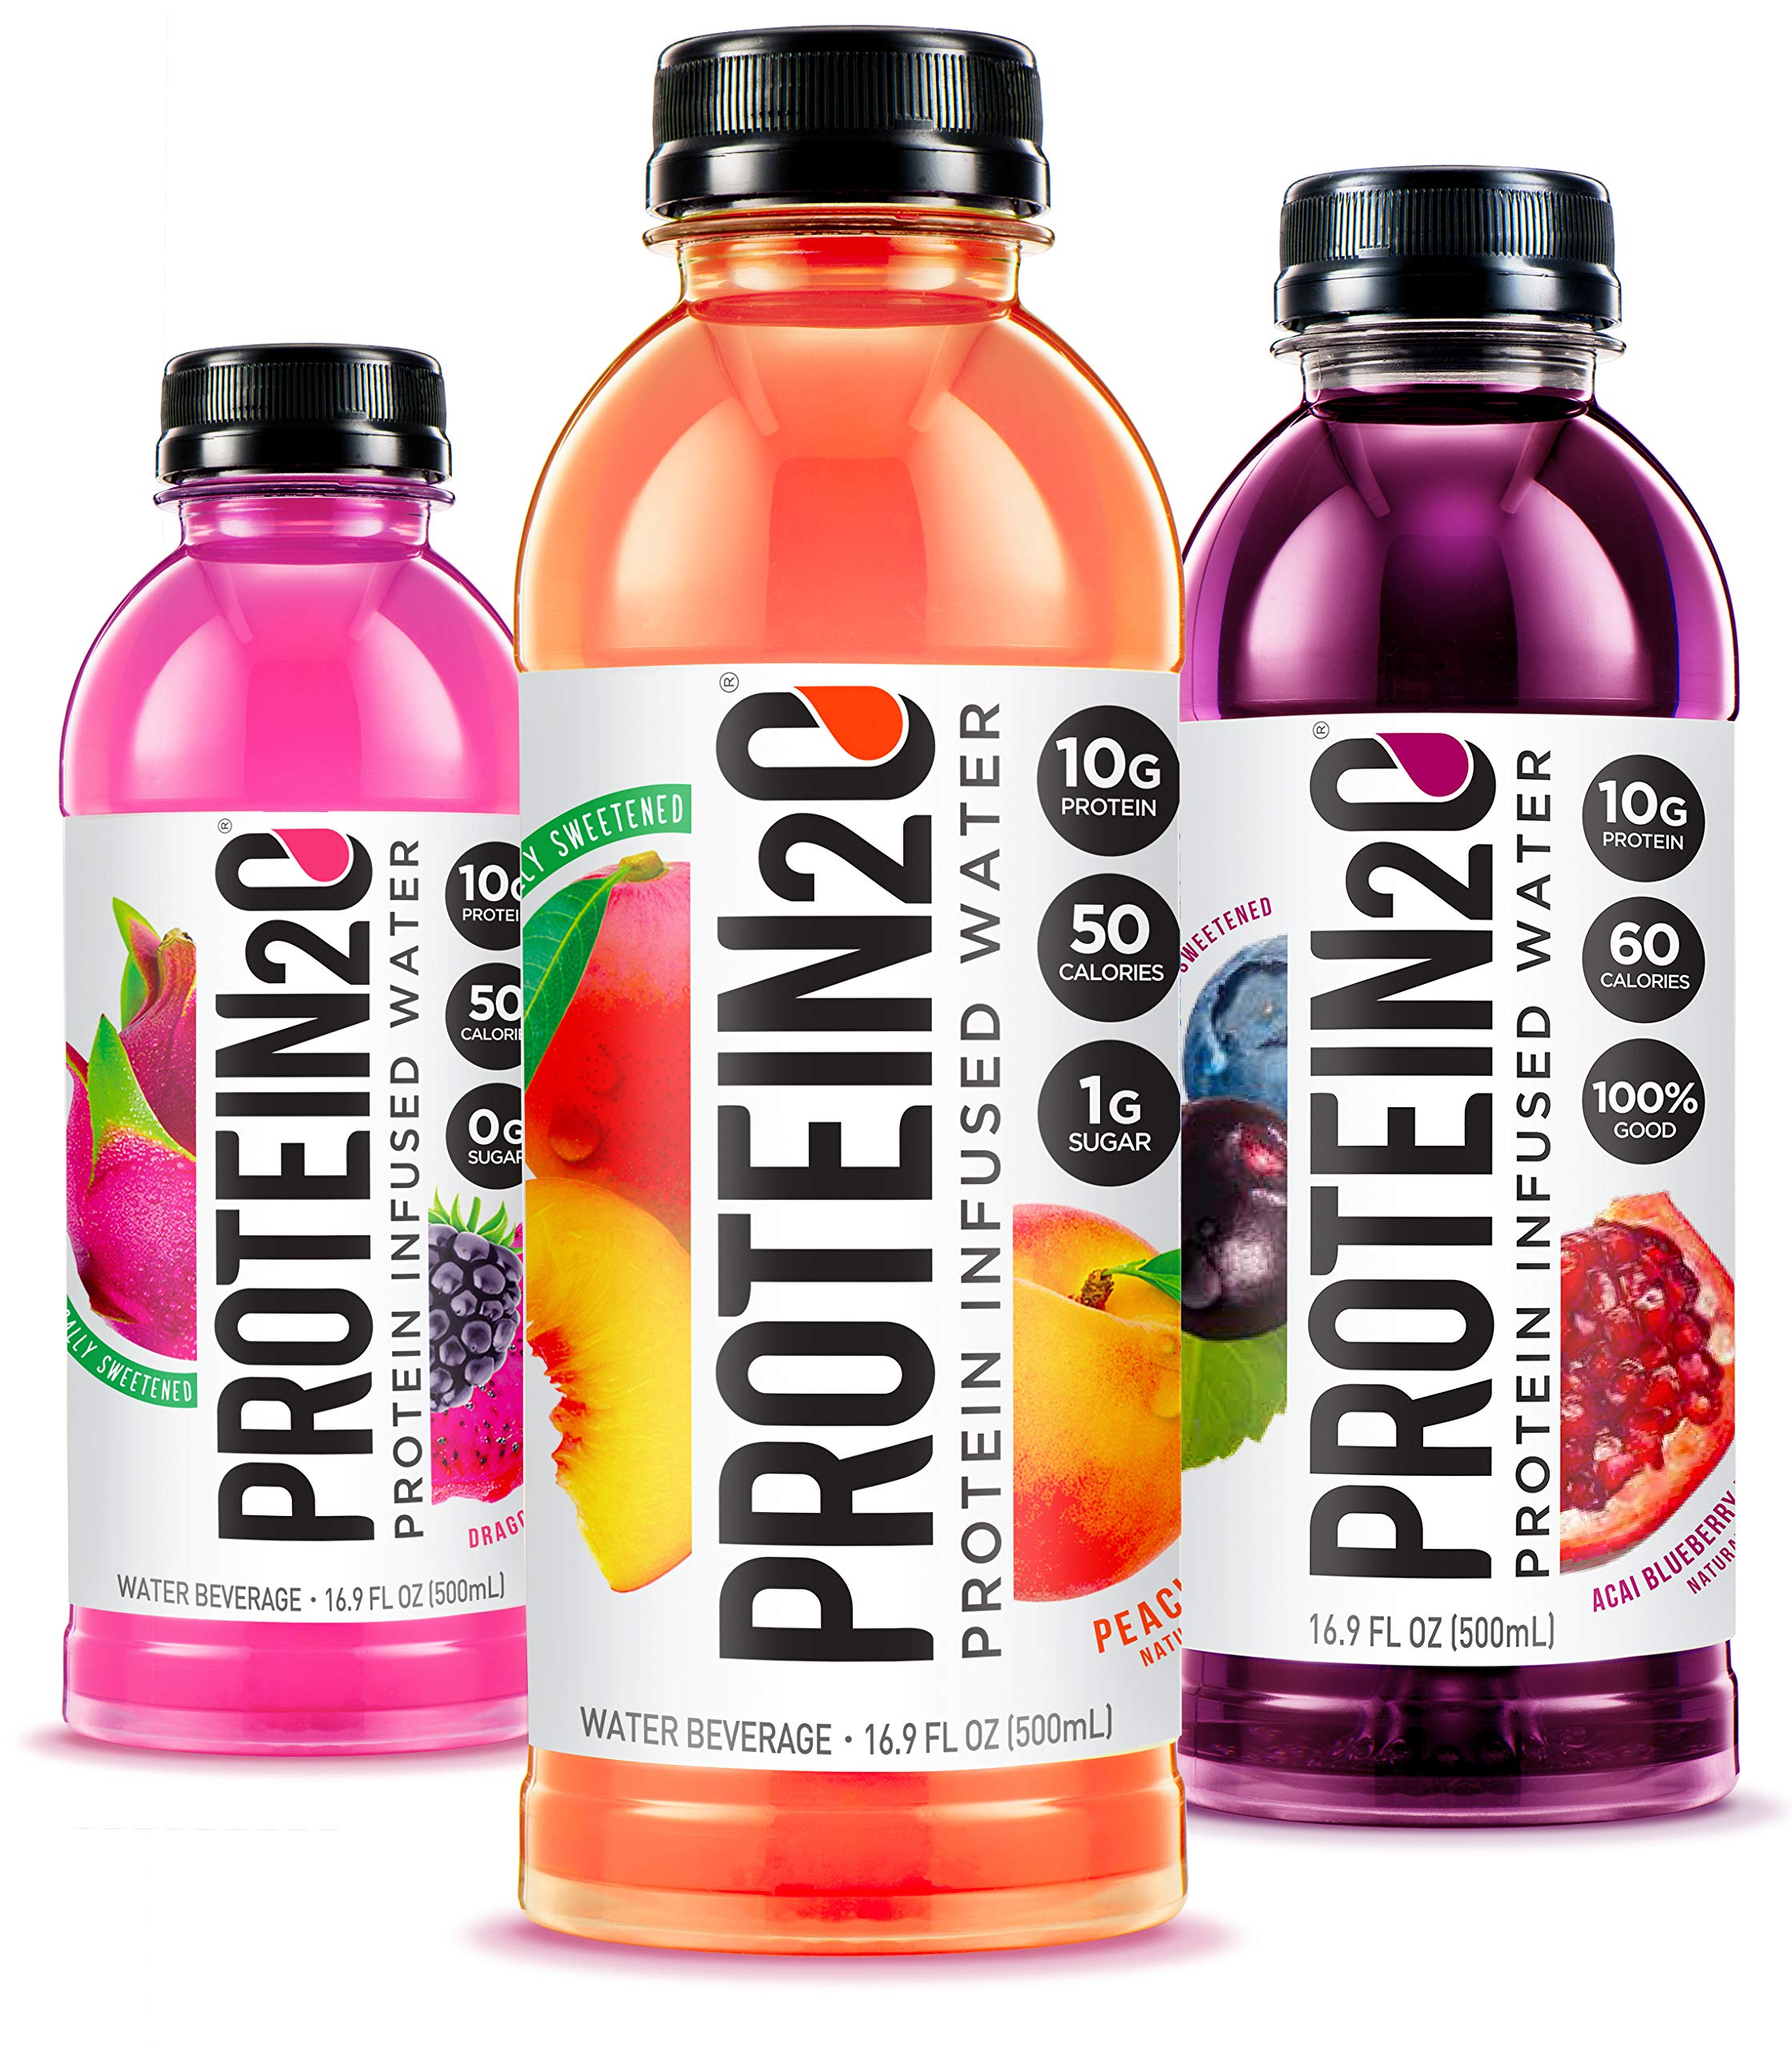 Protein2o Low Calorie Protein Infused Water, 10g Whey Protein Isolate, Variety Pack (16.9 Oz, Pack Of 12) by Protein2o